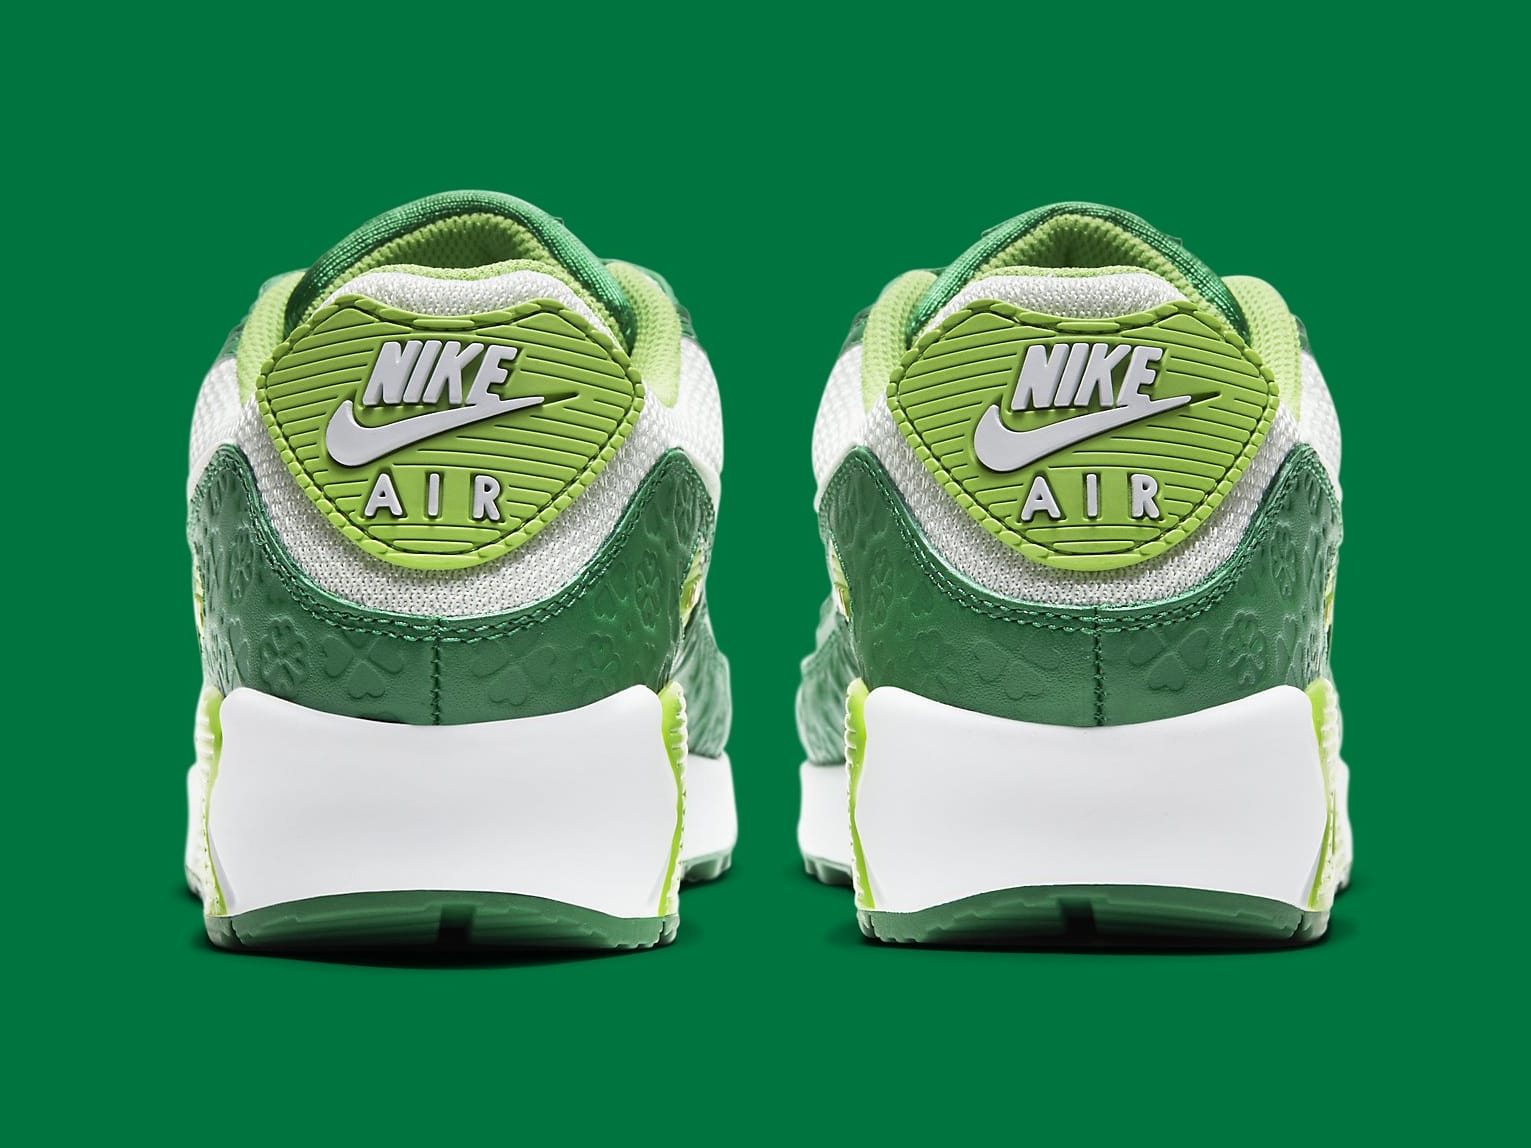 Nike Air Max 90 St. Patrick's Day Release Date DD8555-300 Heel